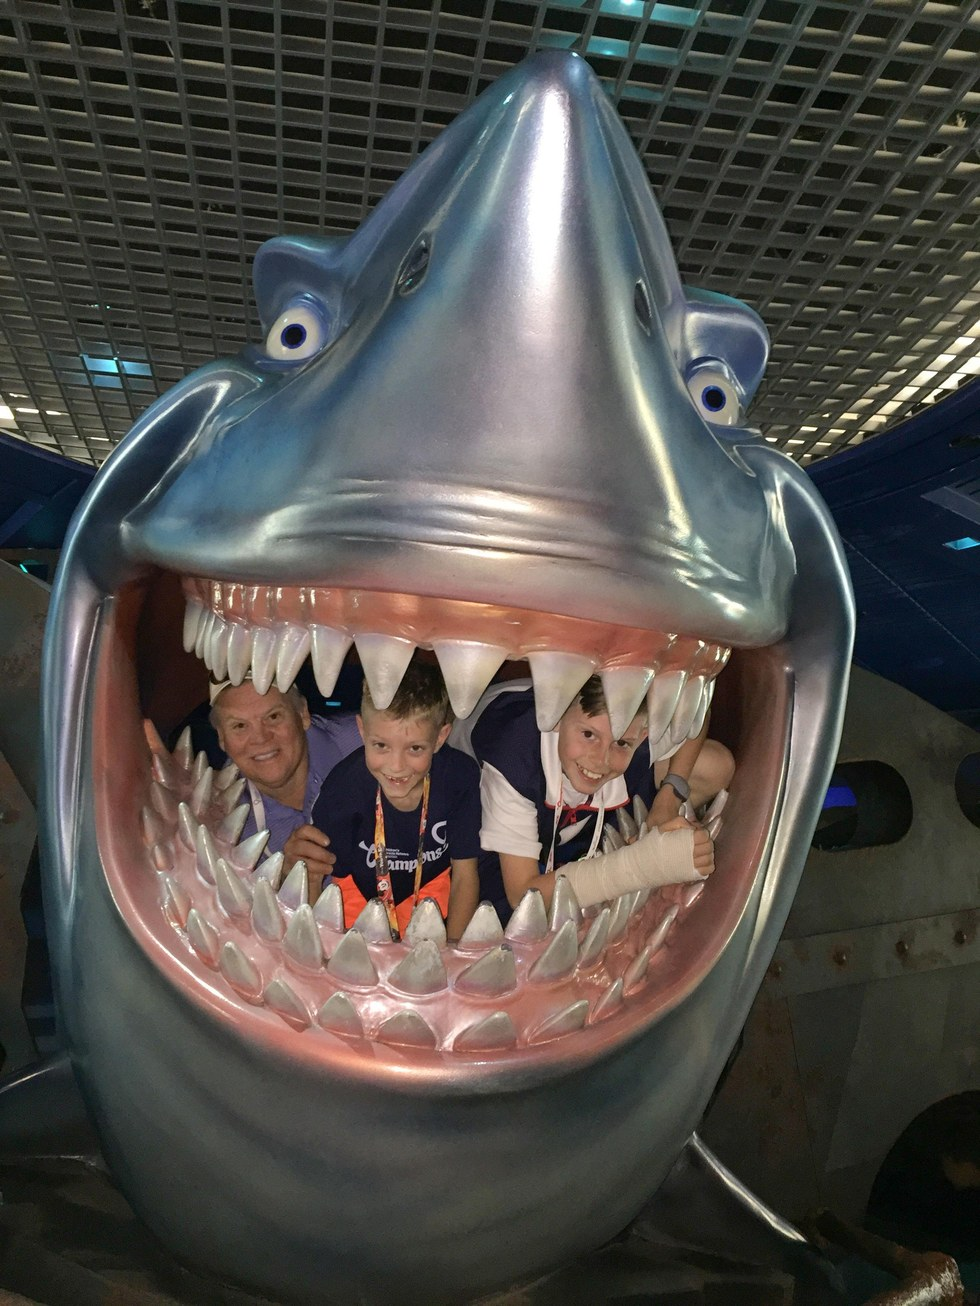 RE/MAX Senior Vice President Mike Reagan, Carson and his brother Tanner pose with a shark at Epcot Theme Park